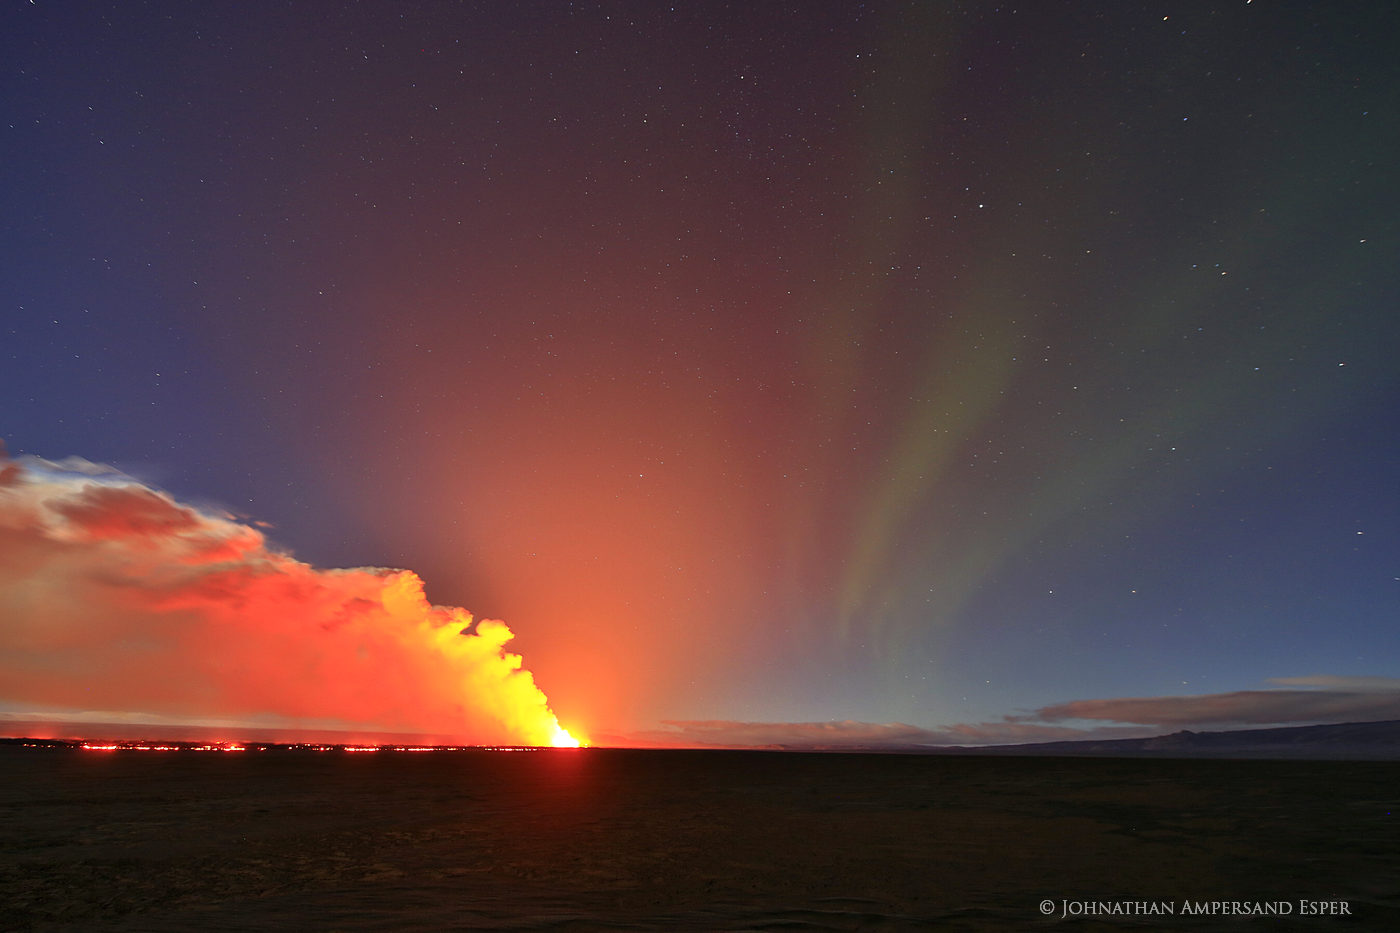 2014, Baugur, Bárðarbunga, Holuhraun, Iceland, crater, erupting, eruption, flow, lava, photo